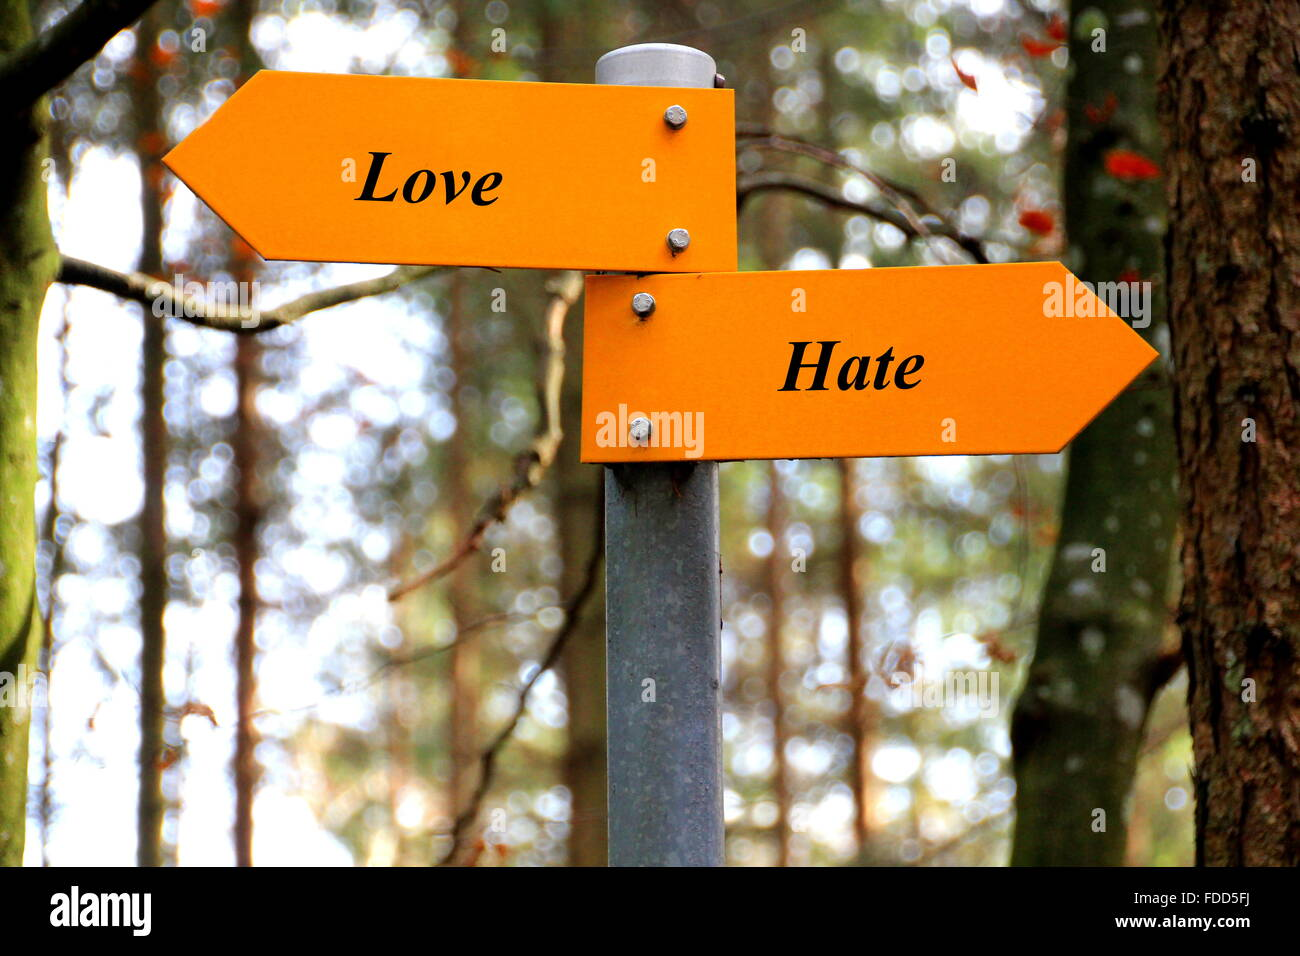 Love and Hate written on a yellow direction sign - Stock Image